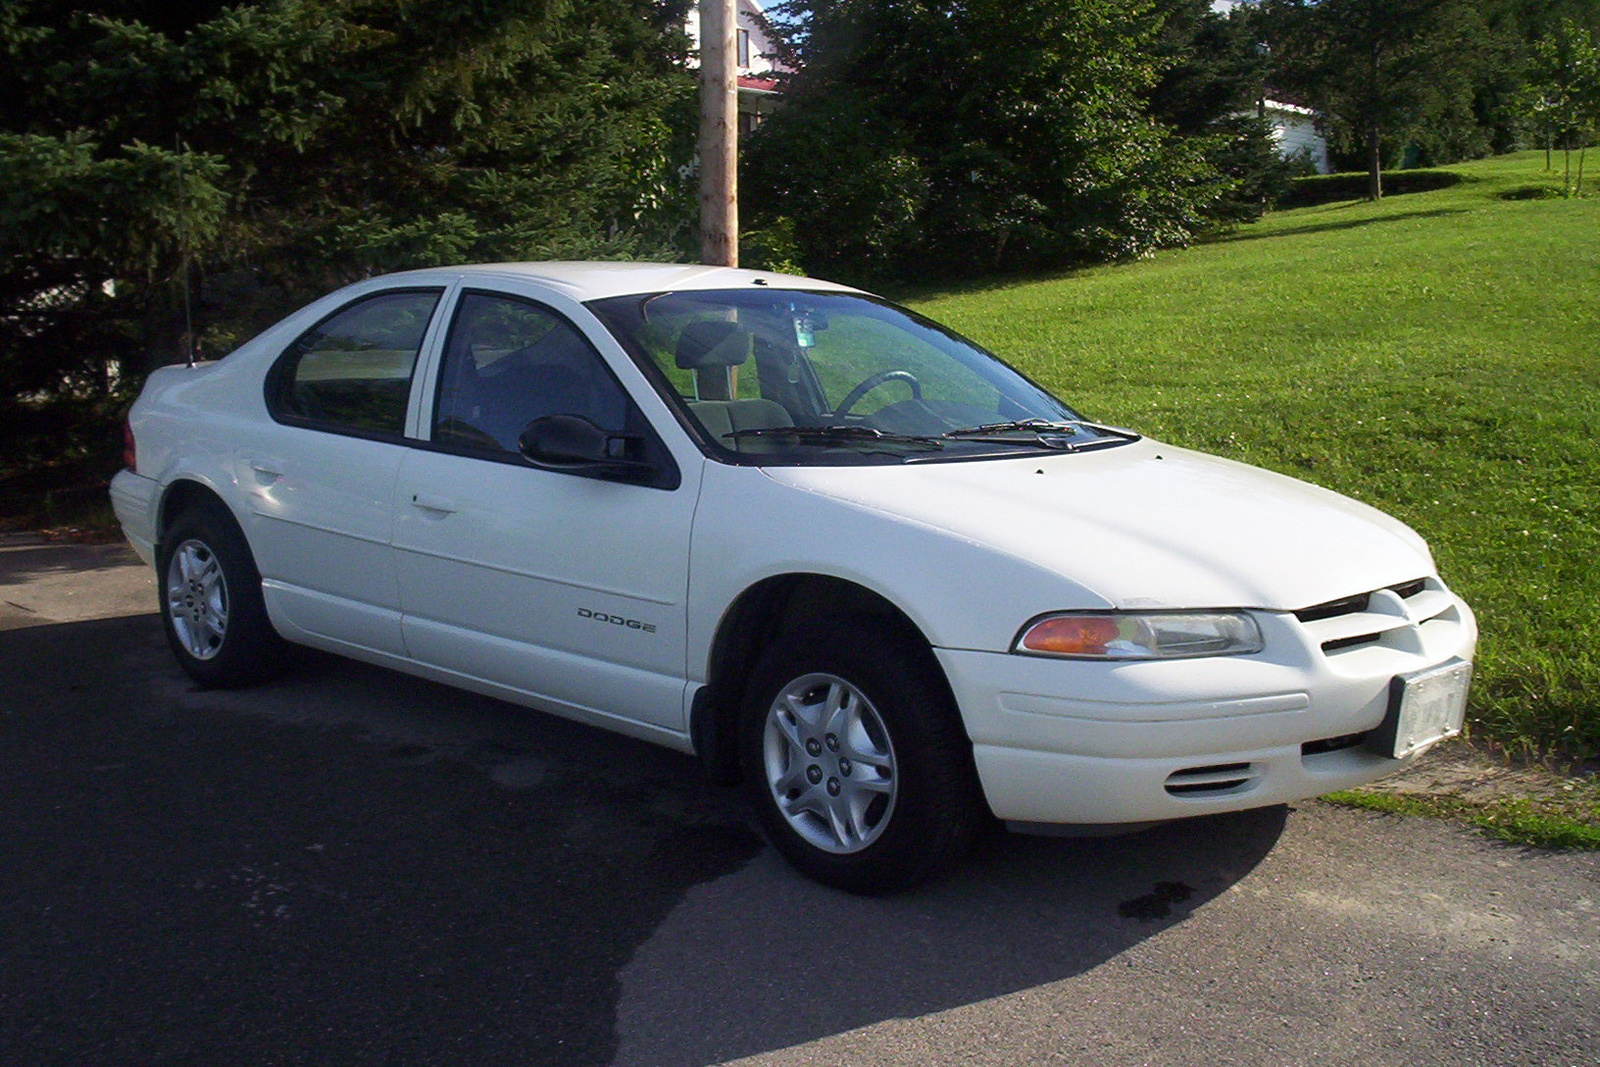 1999 Dodge Stratus 4 Dr STD Sedan picture